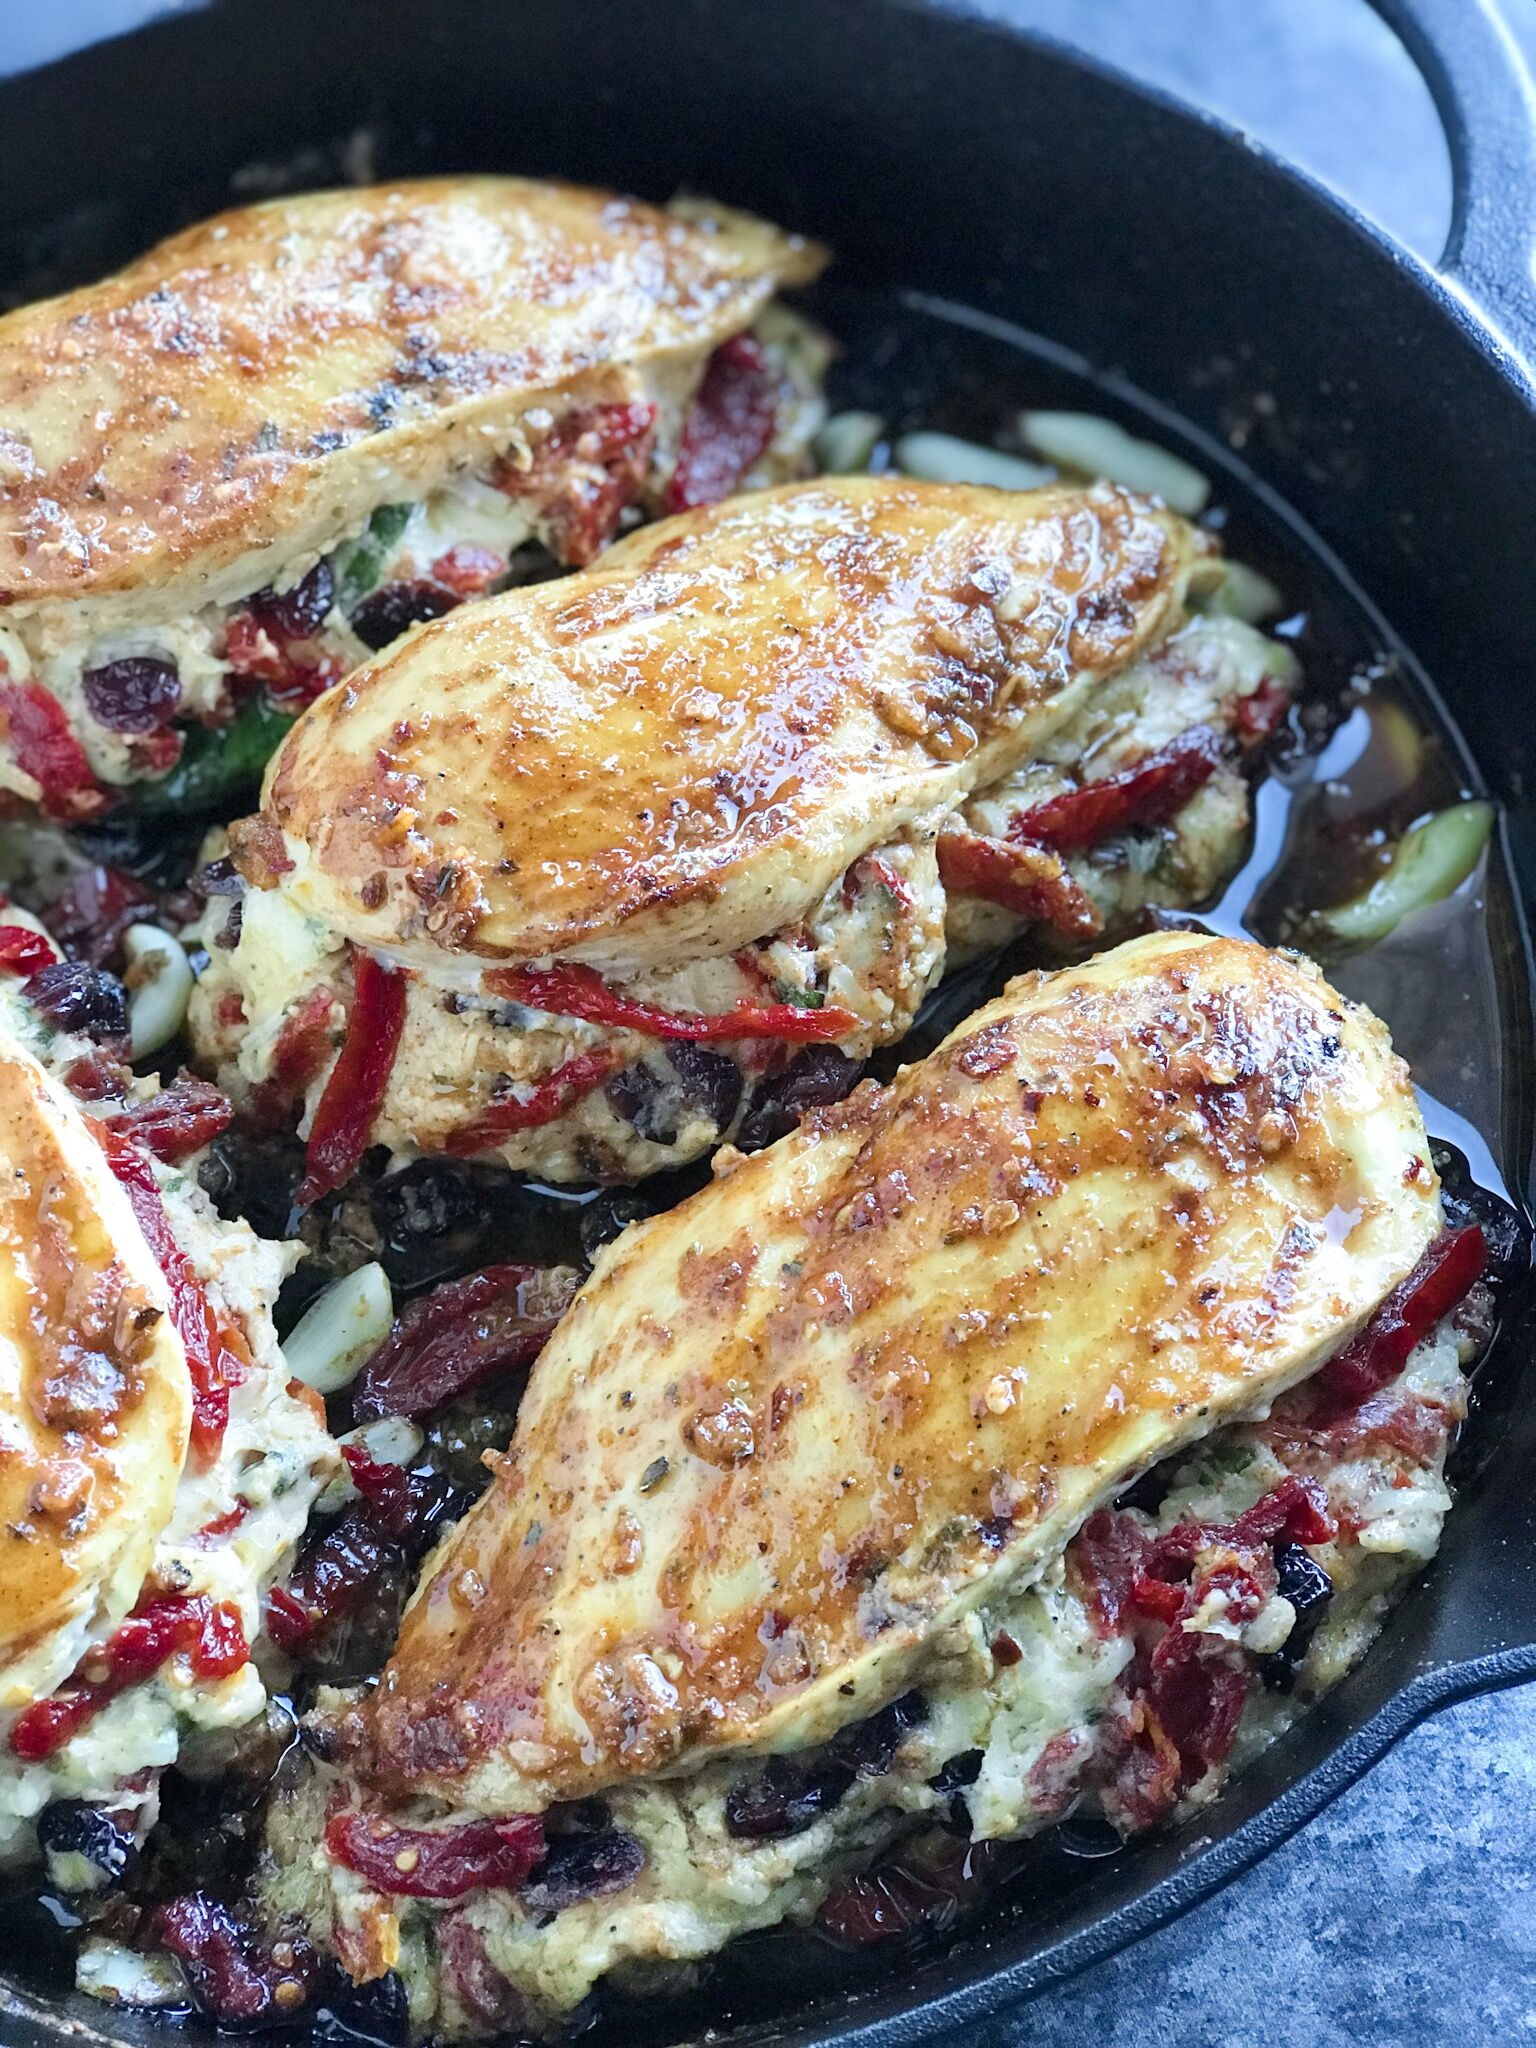 Cheesy Sundried Tomato Stuffed Chicken - Cookin' with Mima